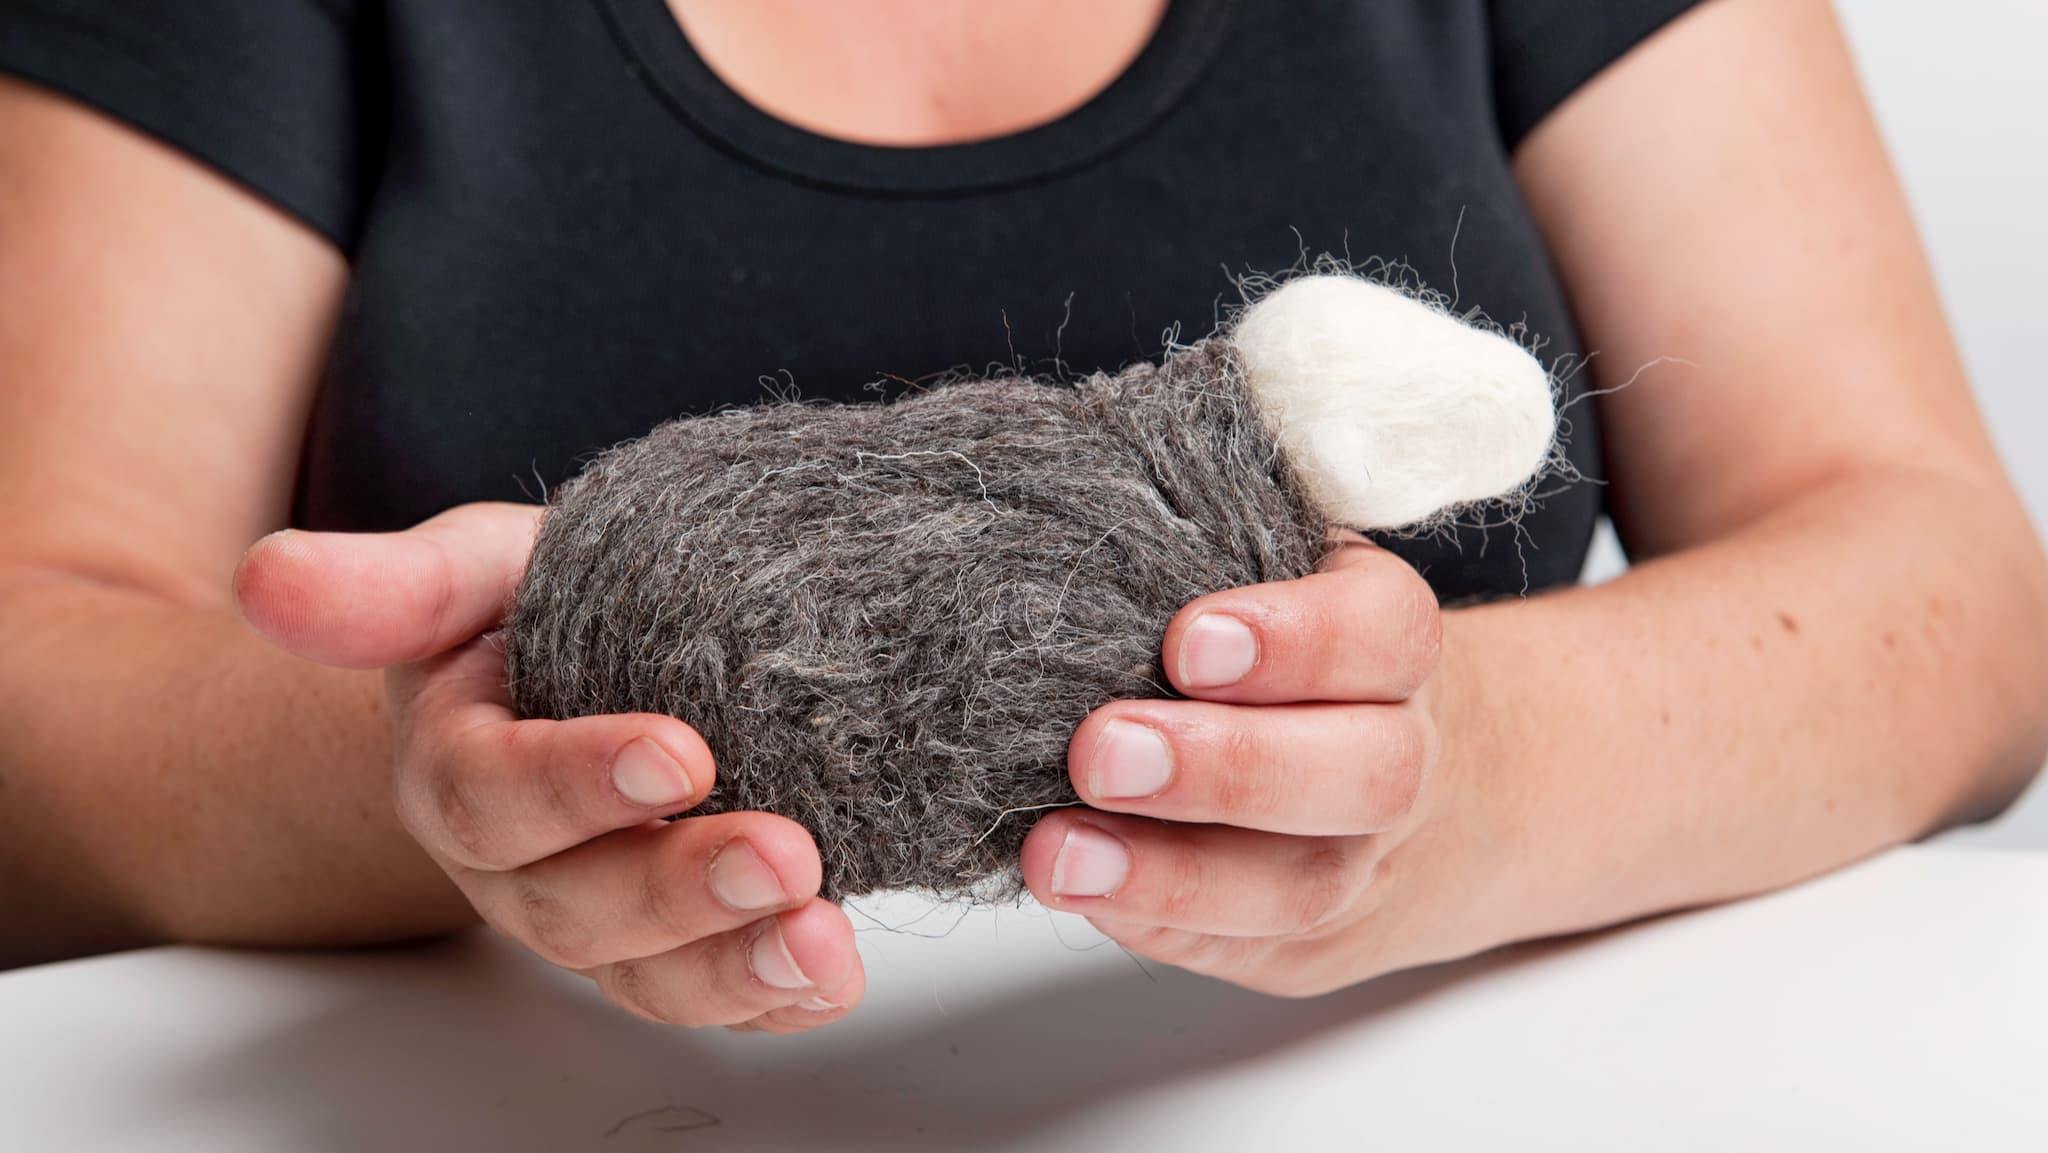 Our Herdy Felting Kit, with the body and head complete